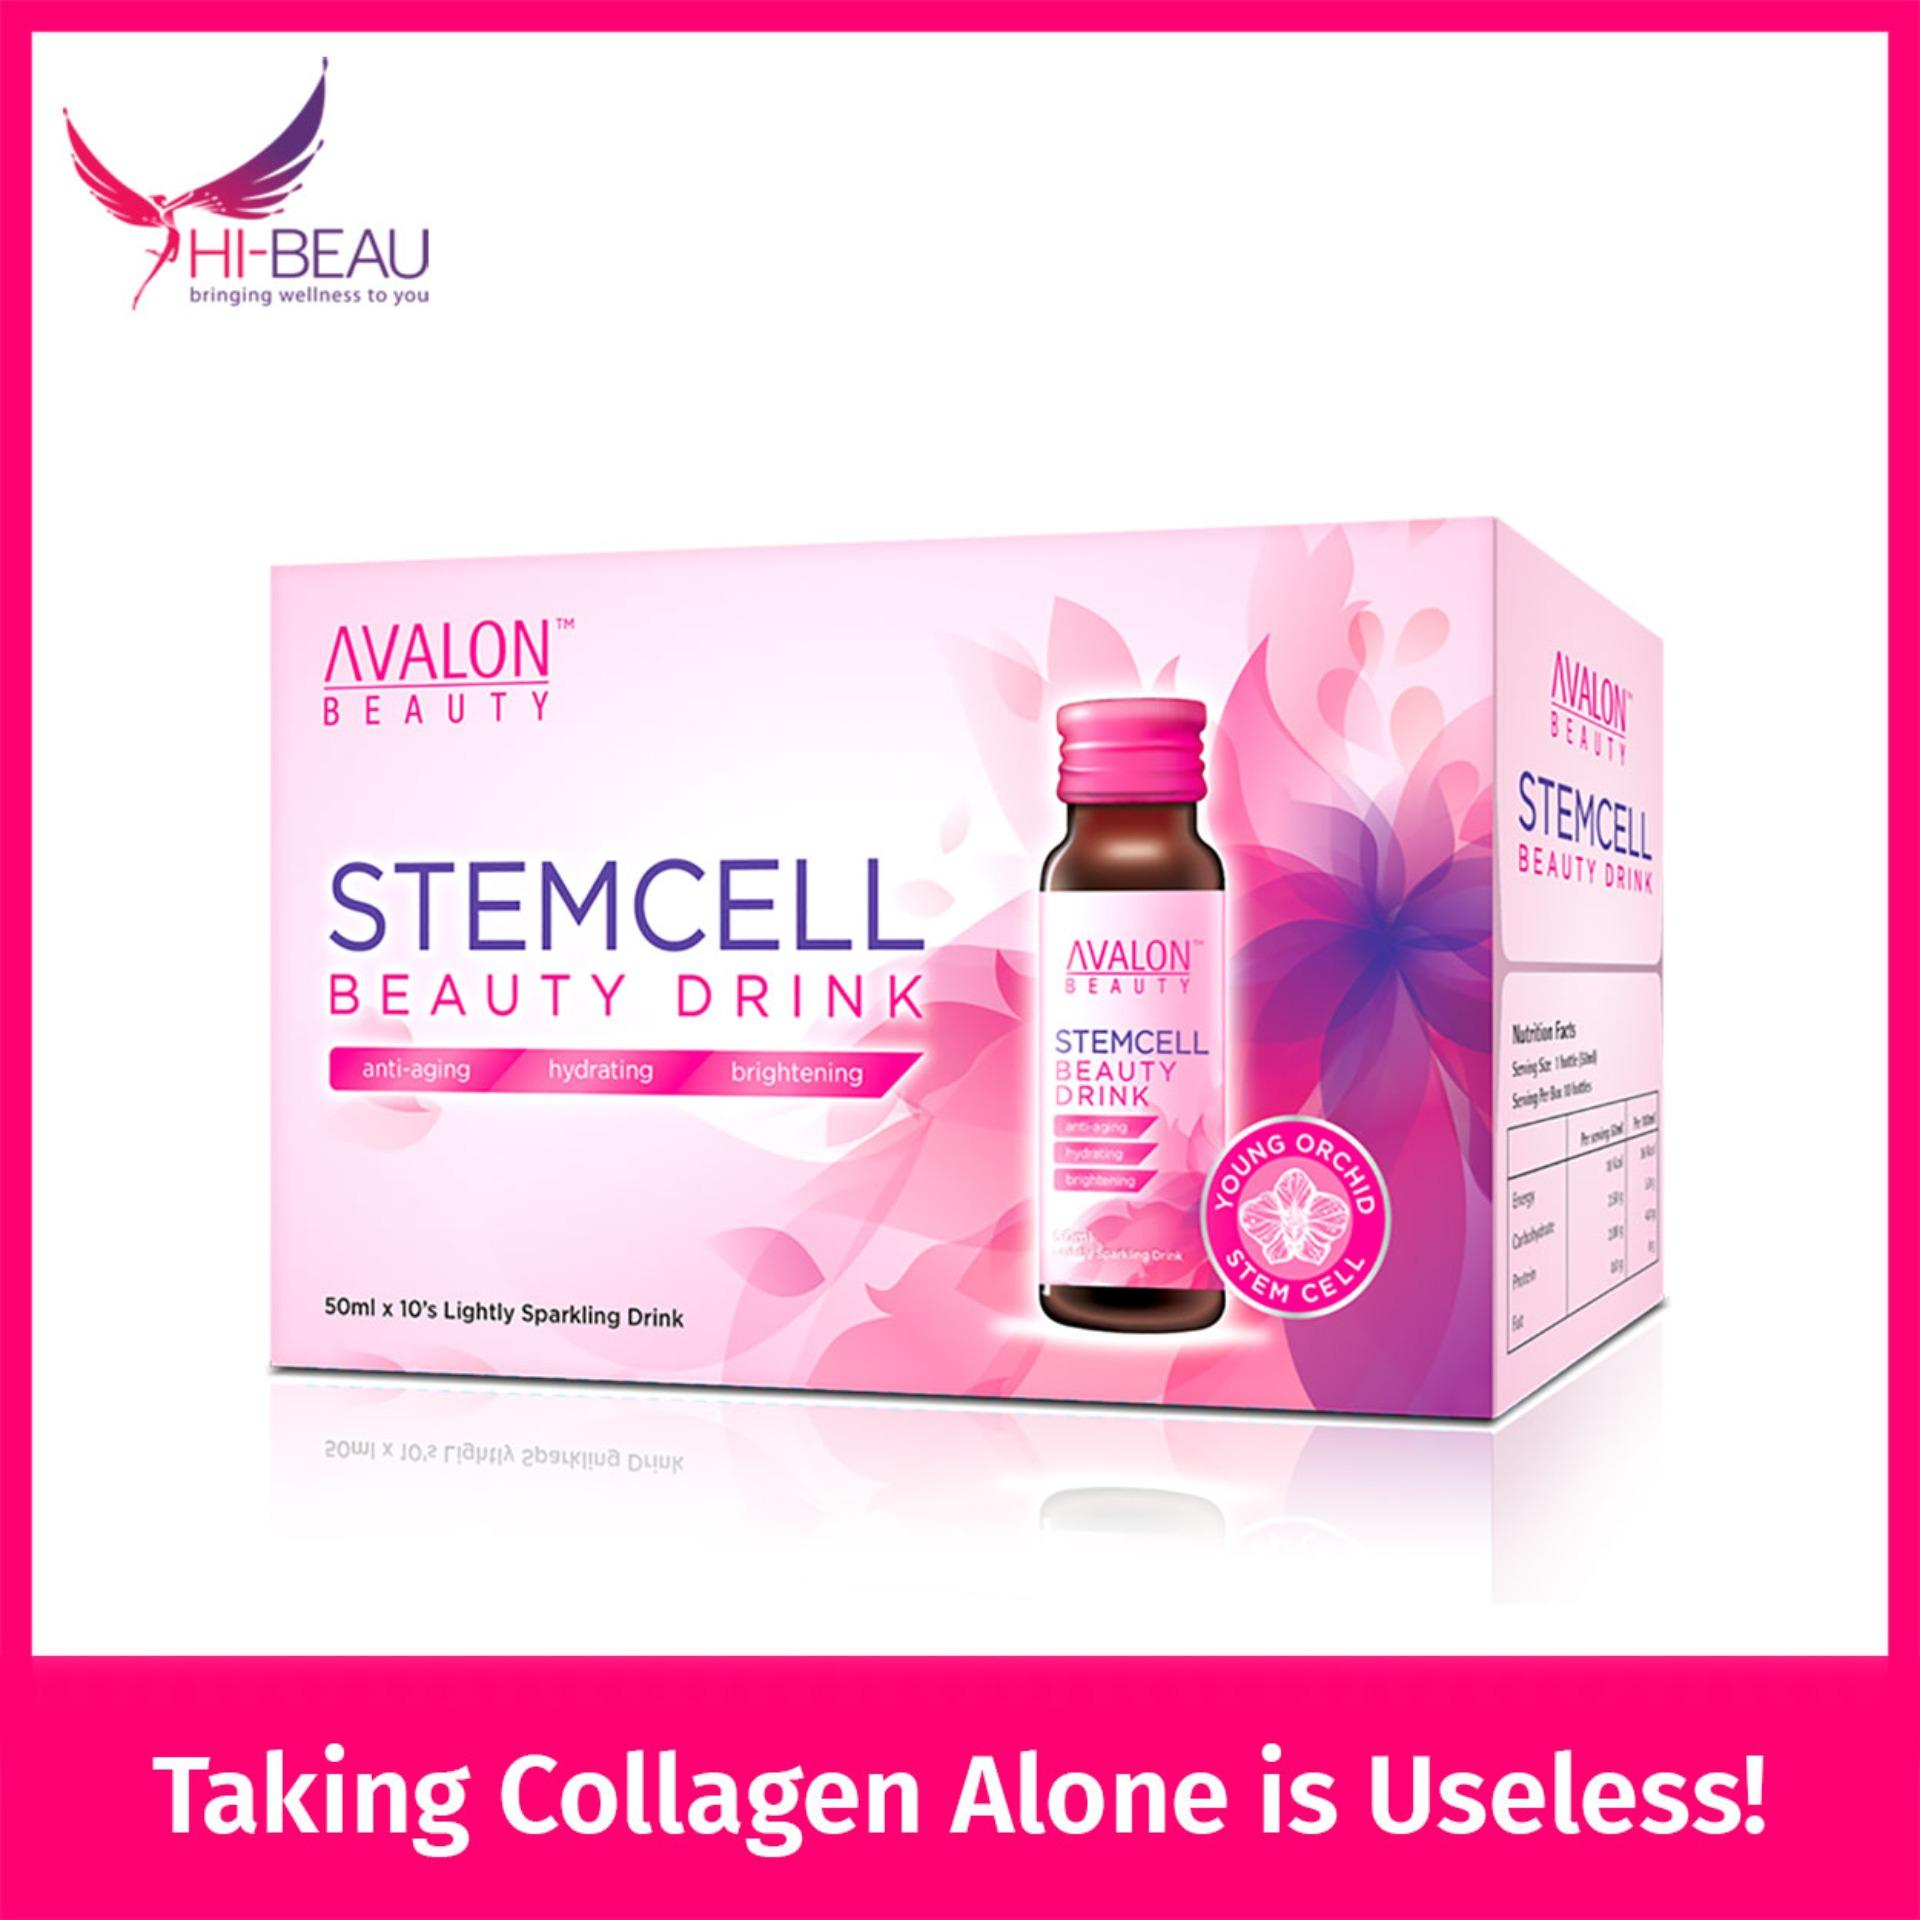 How Do I Get Avalon Stemcell Beauty Drink